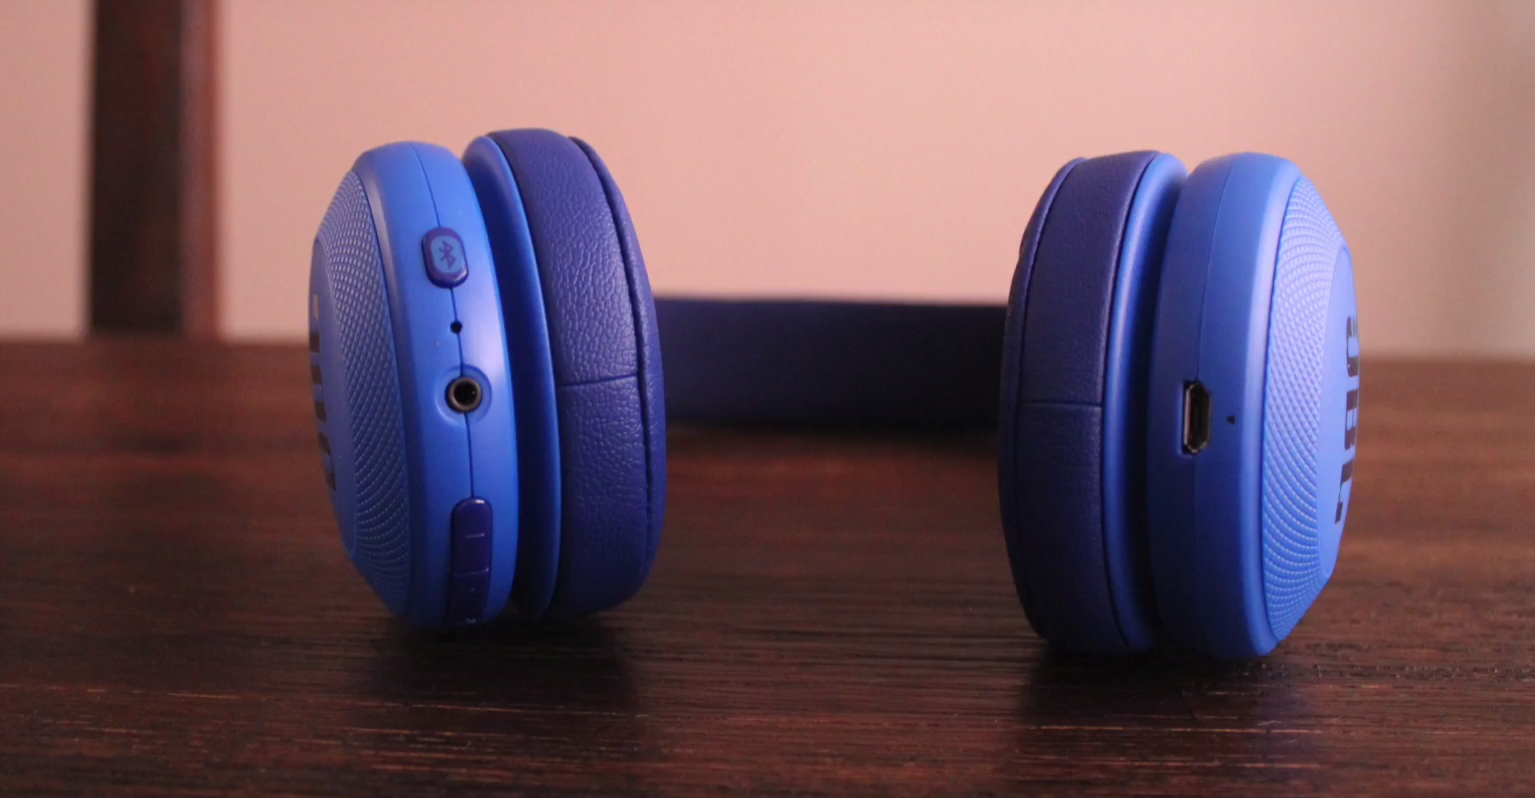 Jbl Bass Jbl E45bt Headphones Review Boosted Bass Response Madd Apple News